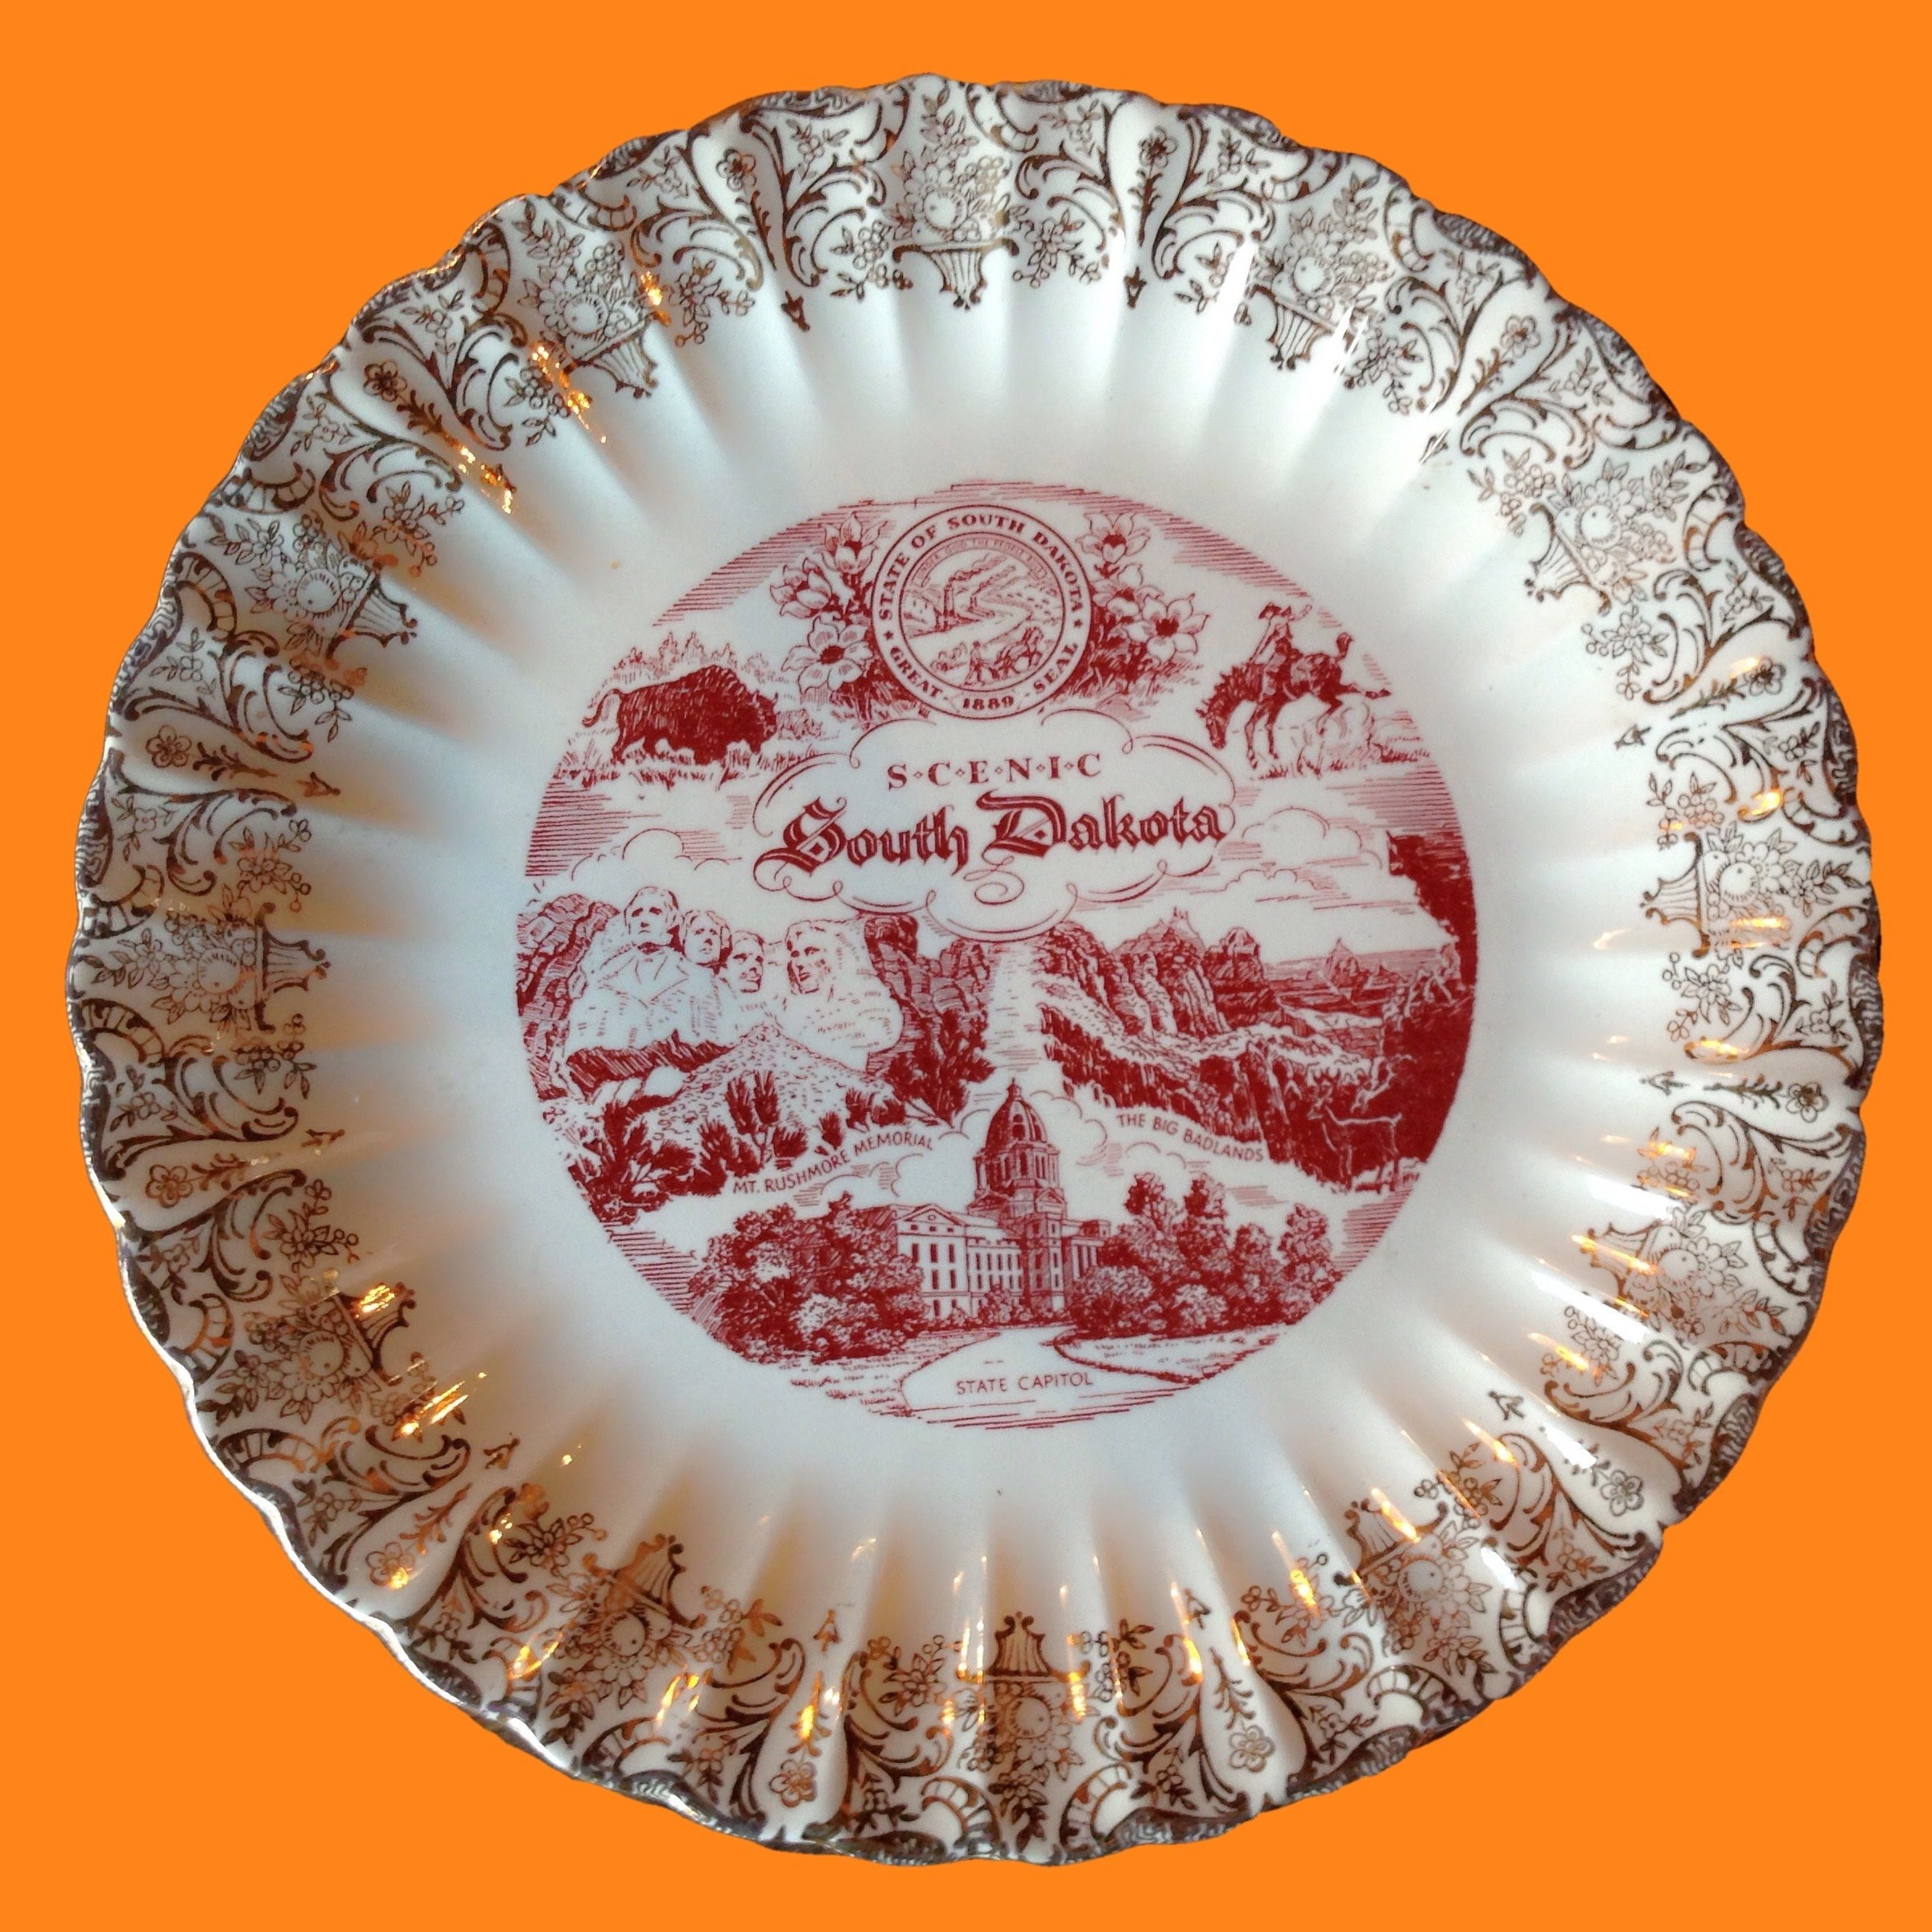 20% OFF - 20% OFF - South Dakota Souvenir Place Plate State Plate Decor or Tableware 00091